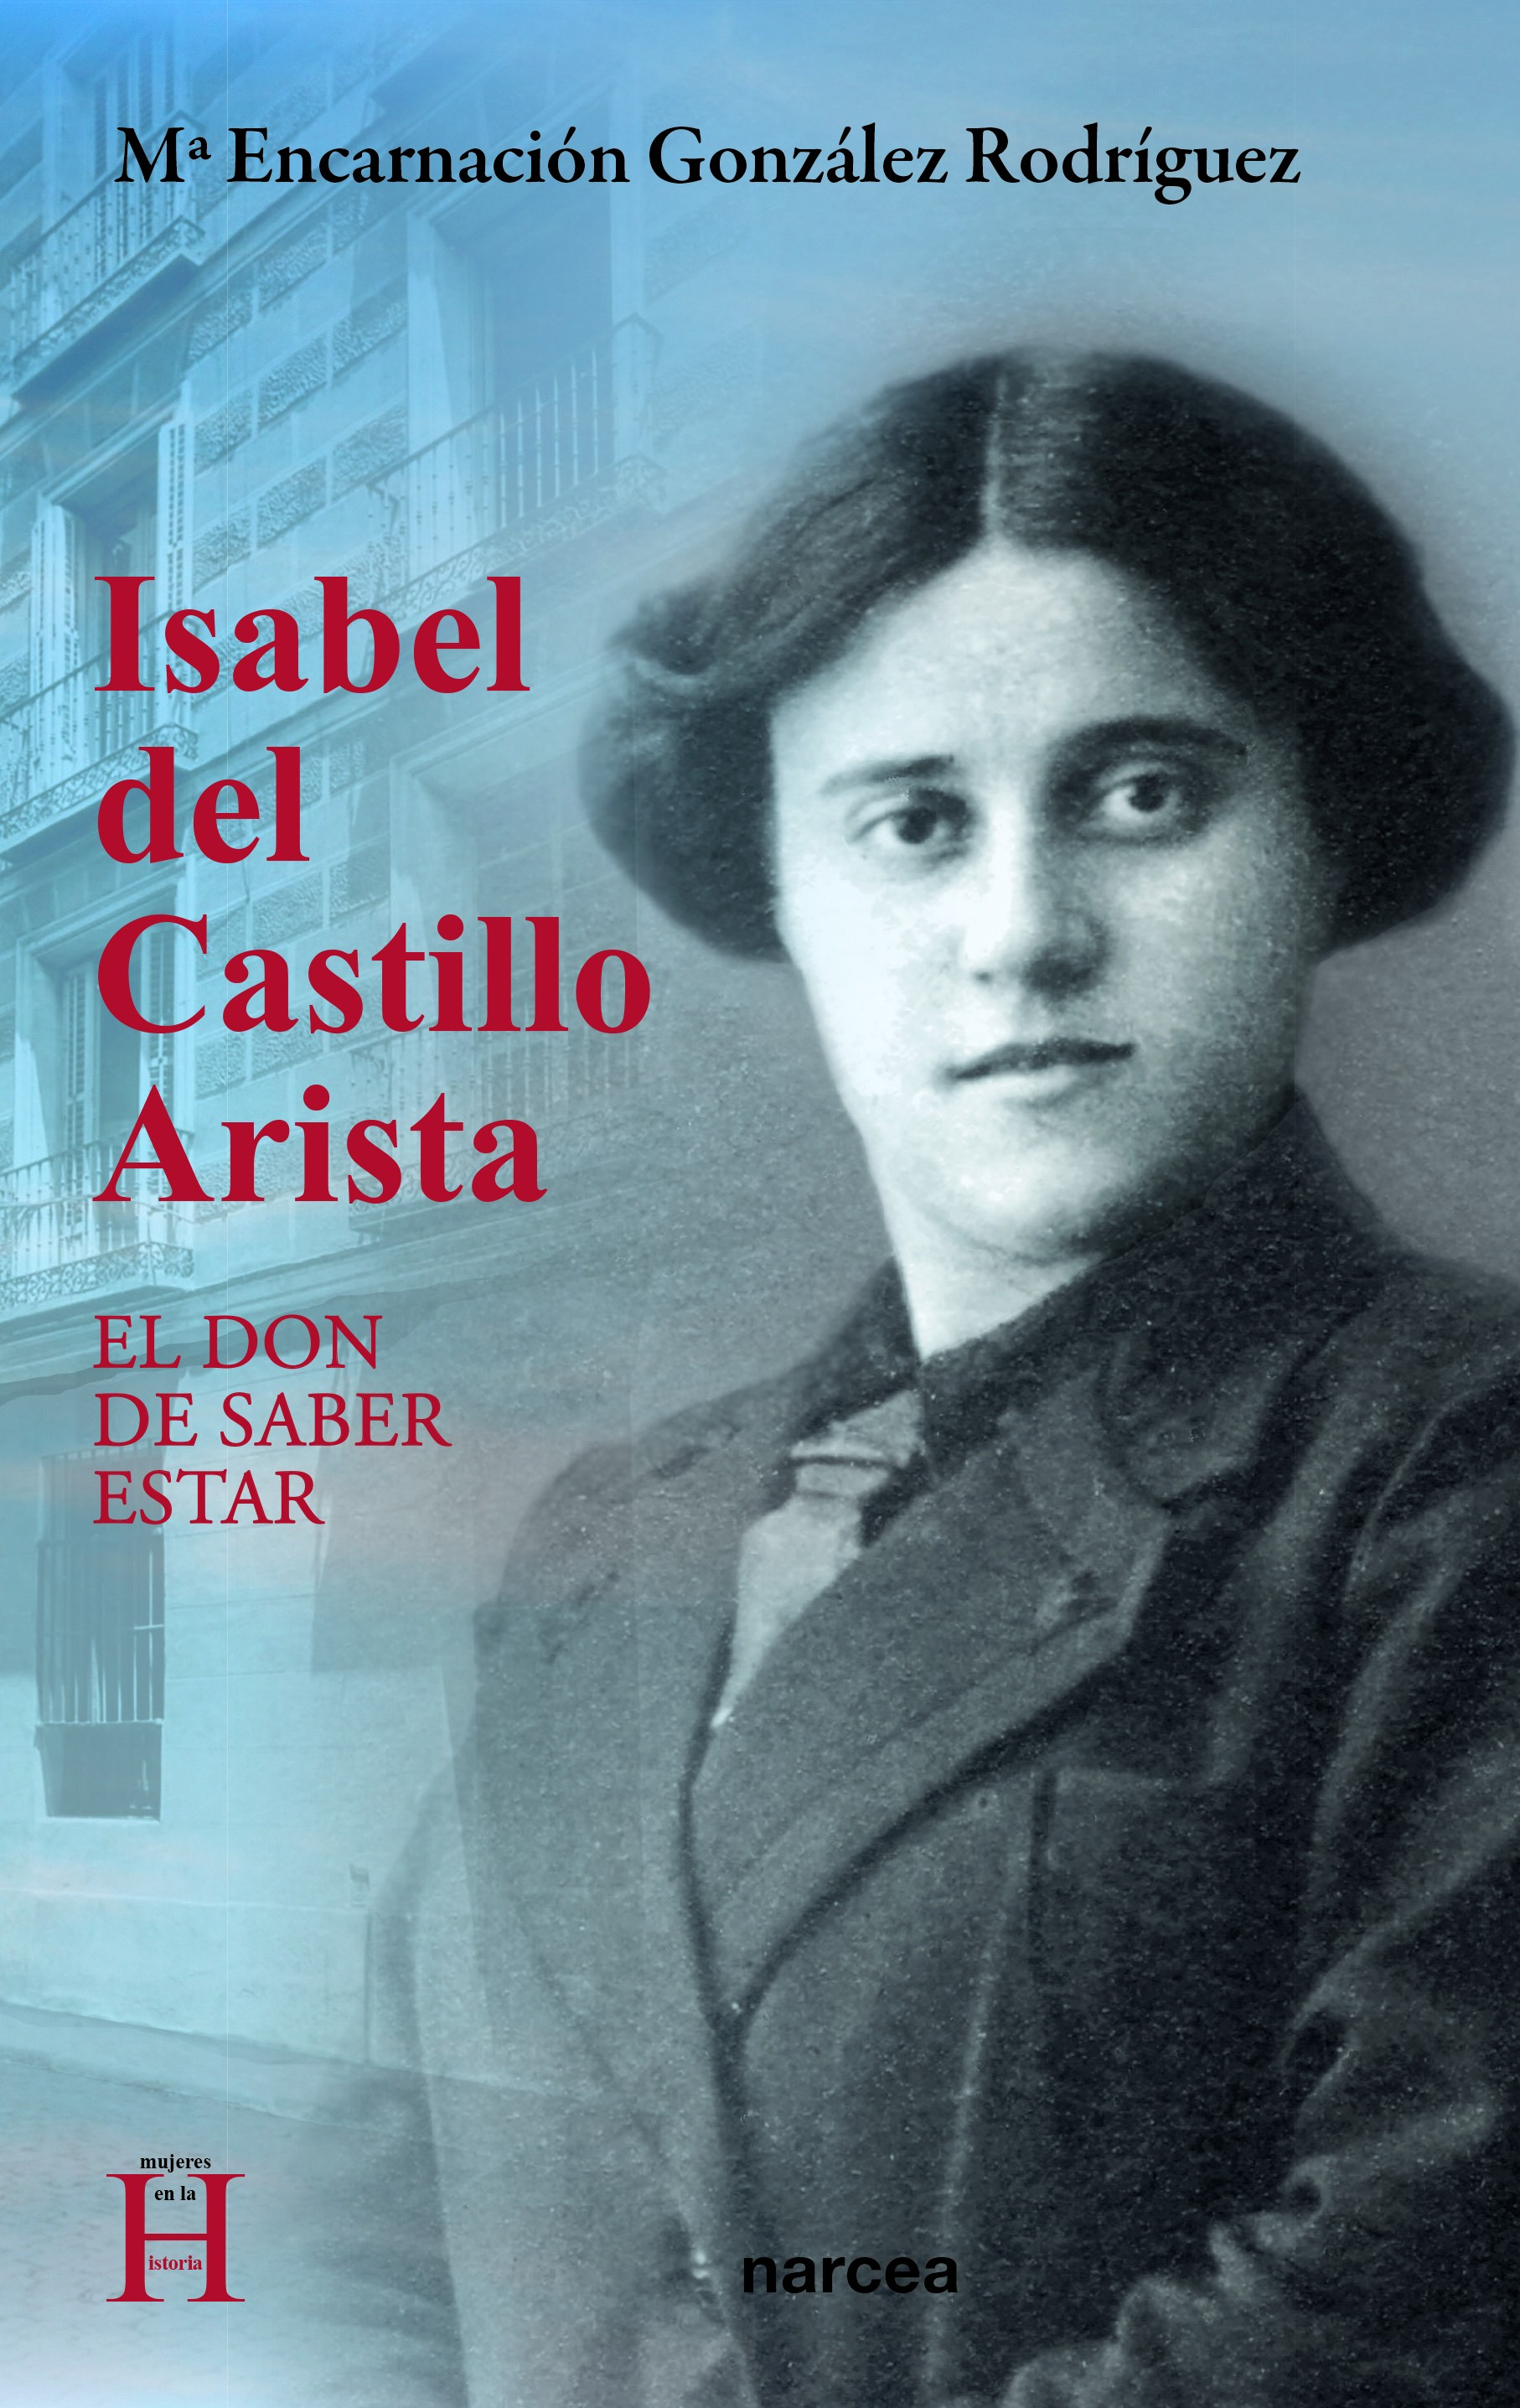 Isabel del Castillo Arista